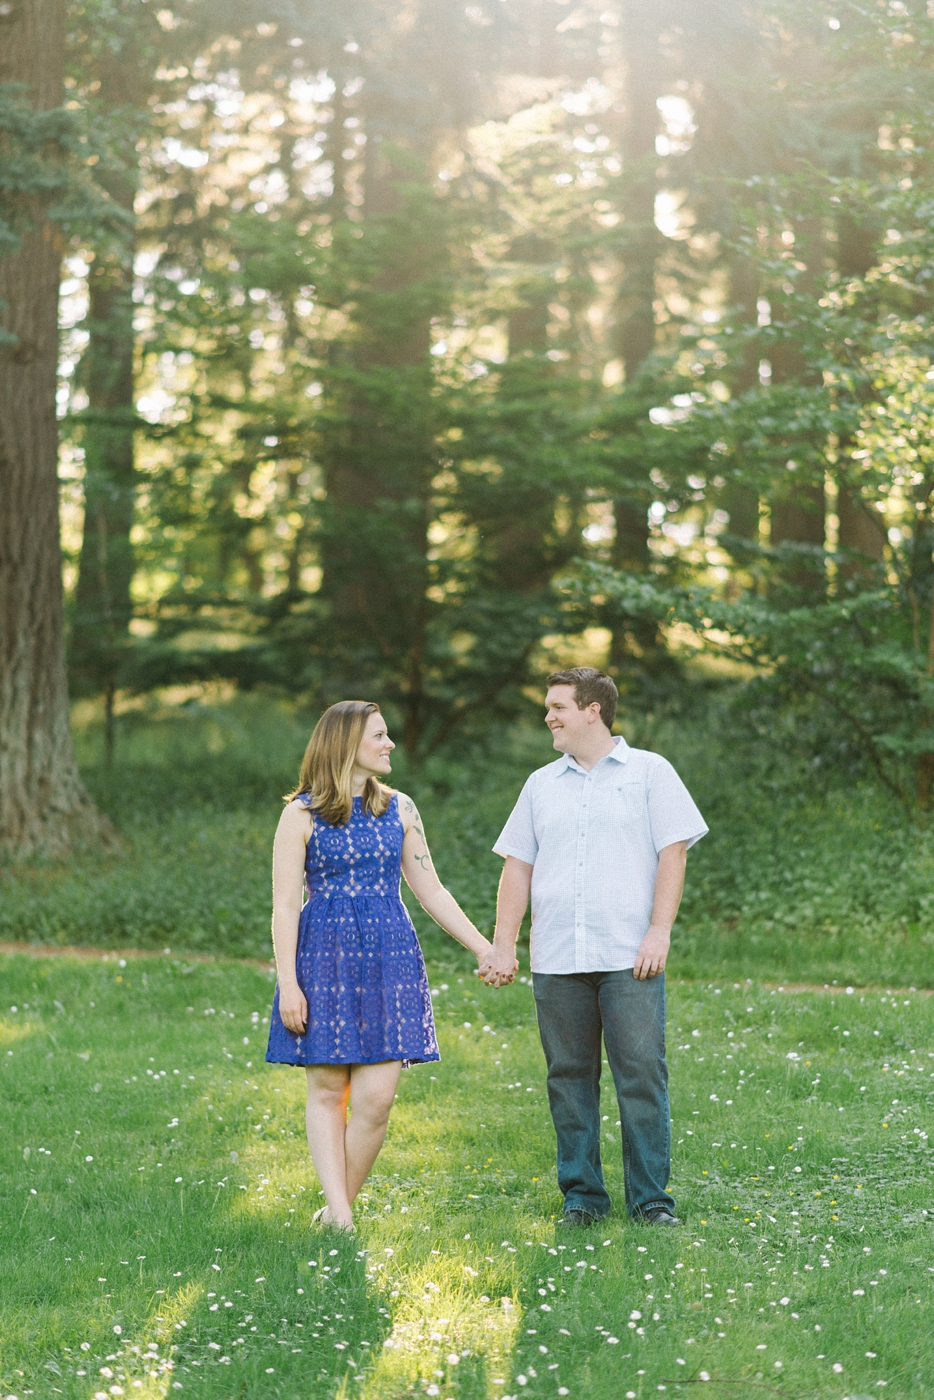 engagement-photography-portland-oregon-hoyt-arboretum-washington-park-romantic-couples-portraits-holding-hands-nature-natural-light-forest-field-shelley-marie-photo-1